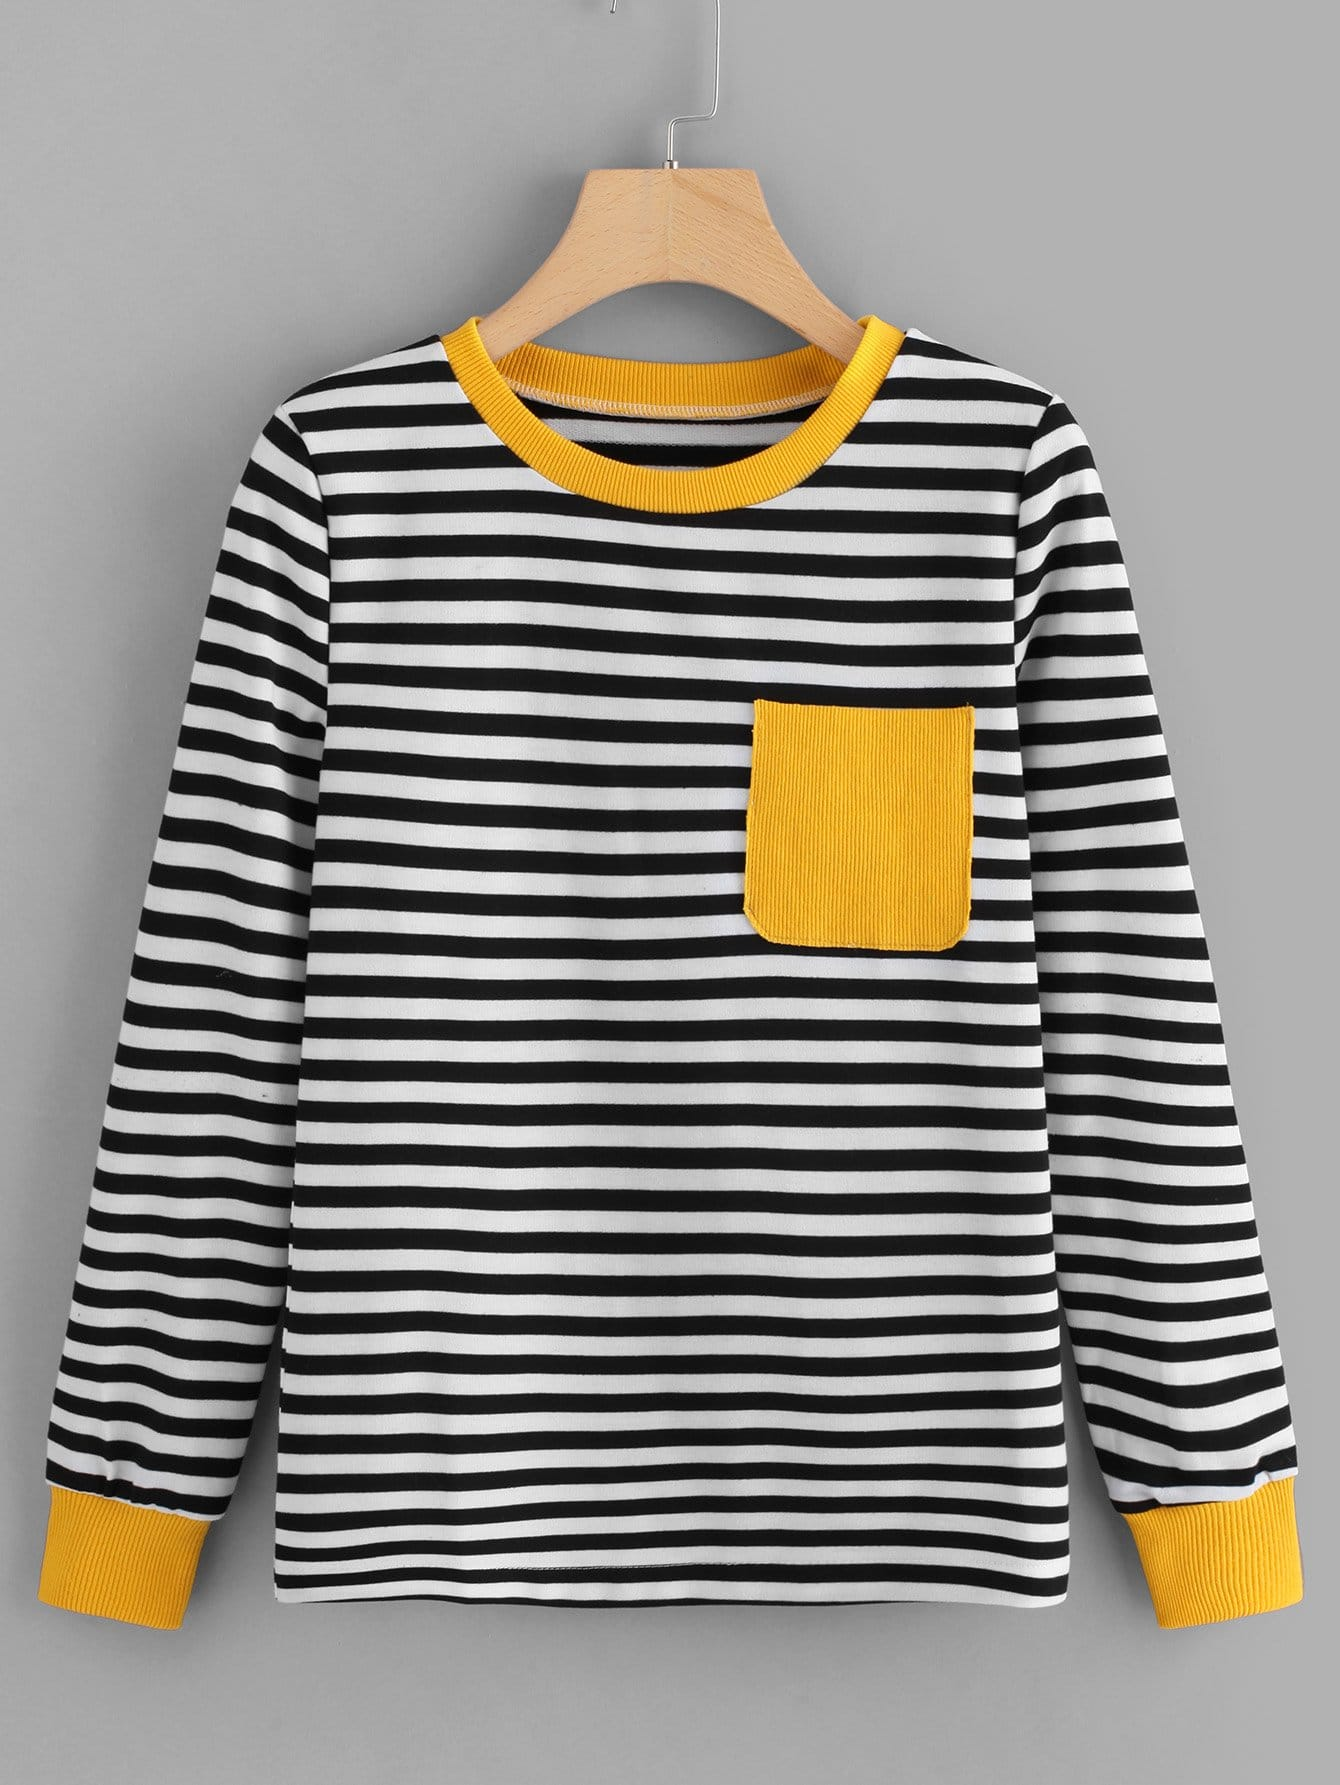 Contrast Pocket Striped Tee дневные ходовые огни 0 5 2 9 drl 14 16 100% waterproof easy